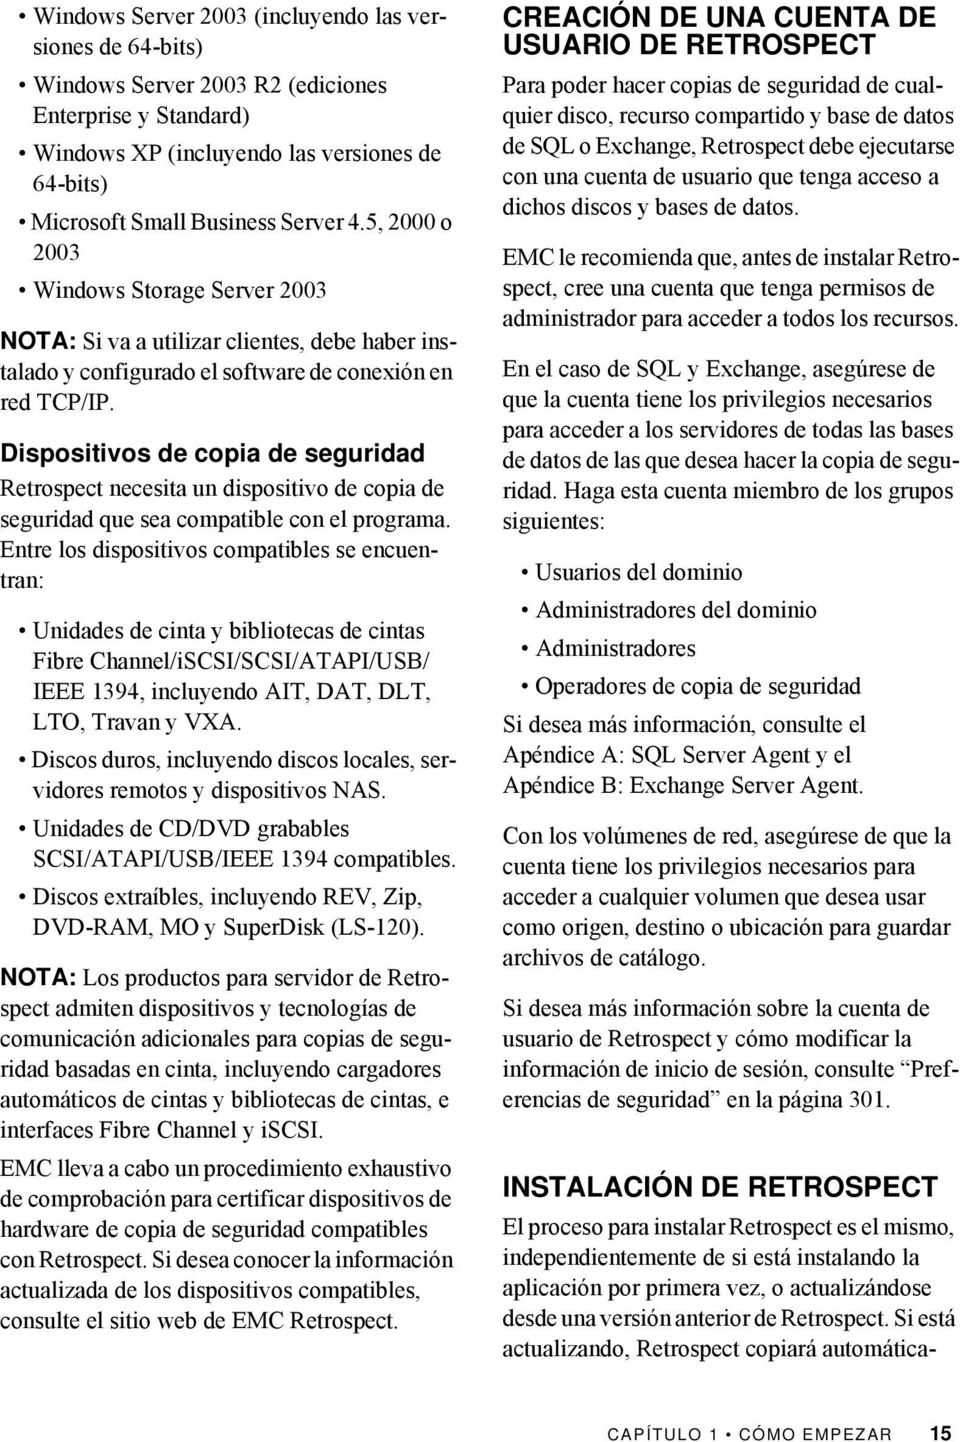 Dispositivos de copia de seguridad Retrospect necesita un dispositivo de copia de seguridad que sea compatible con el programa.